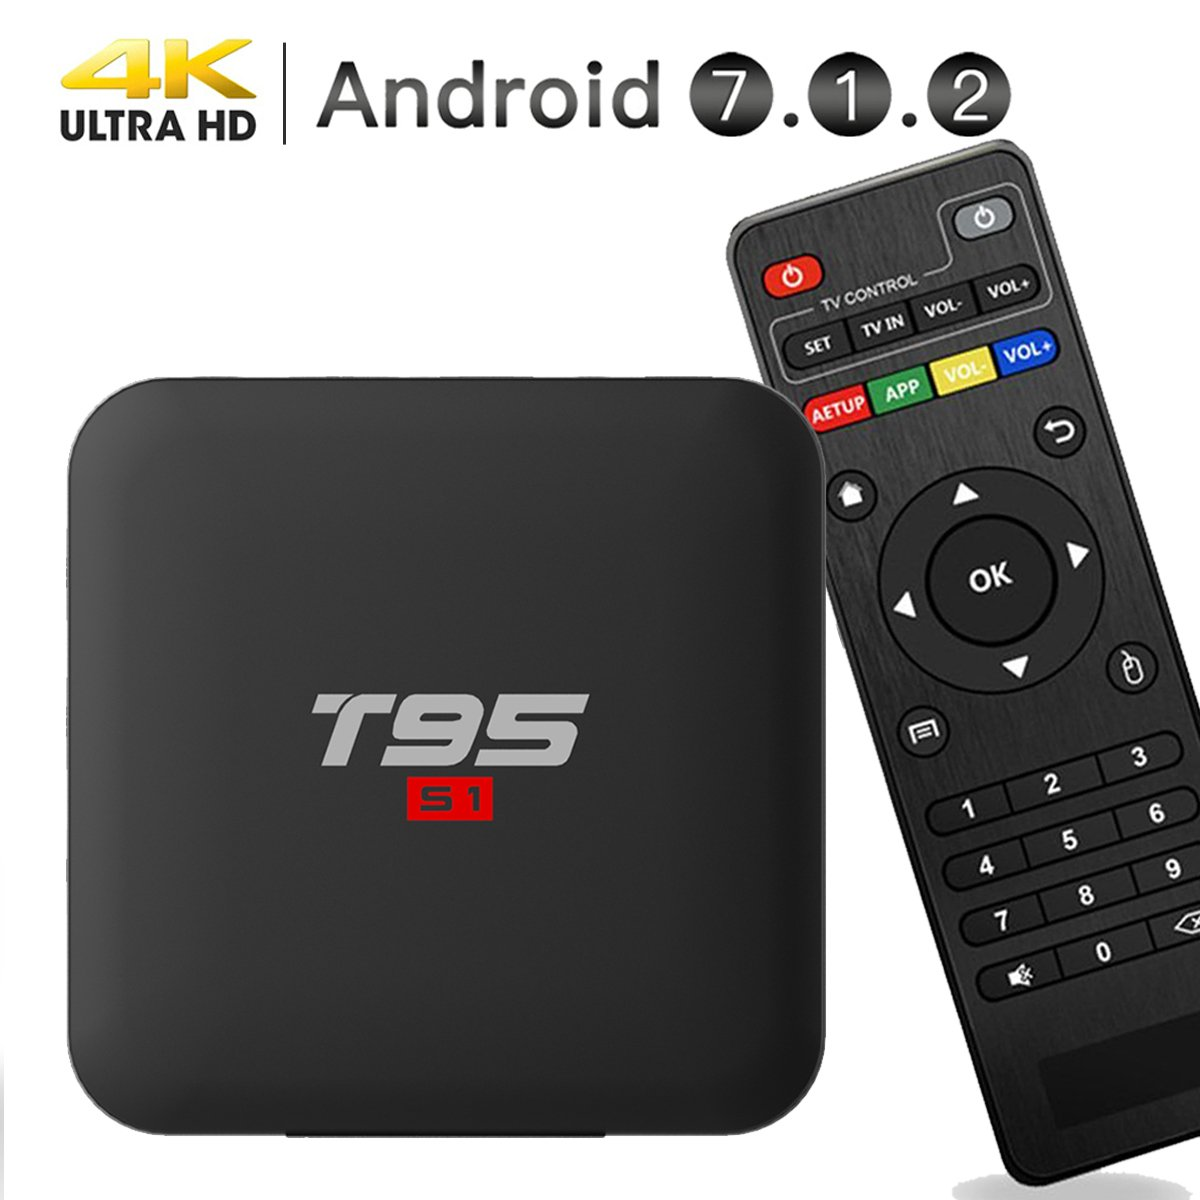 EASYTONE Android 7.1.2 TV Box, 2018 Model Smart TV Box Quad-core 64 Bits /1GB+8GB Supporting 4K (60Hz) Full HD/H.265/2.4G WiFi/HD 2.0 T95 Android Box